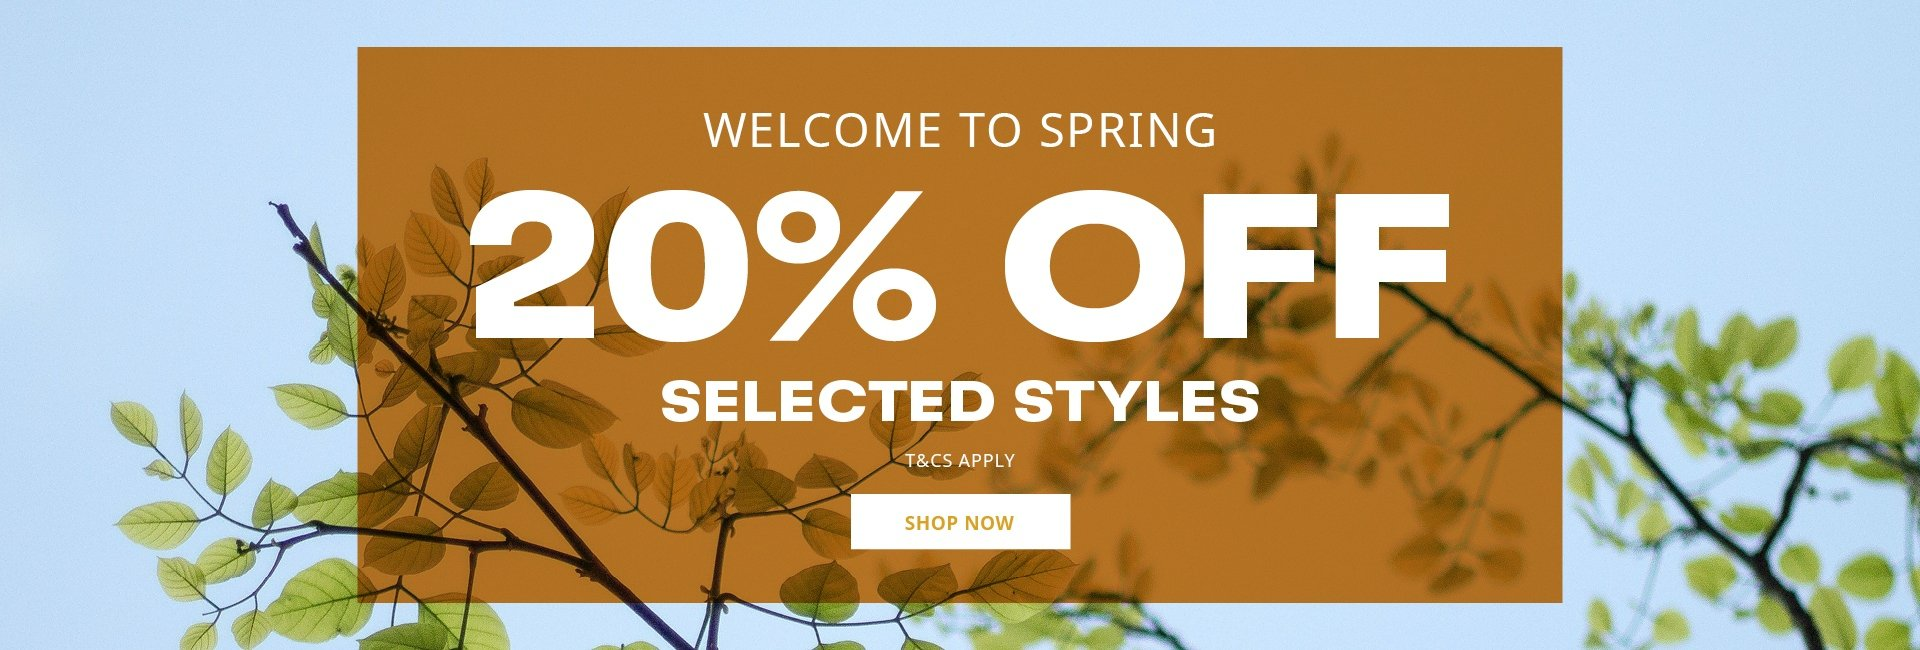 Timberland 20% Off Selected Styles